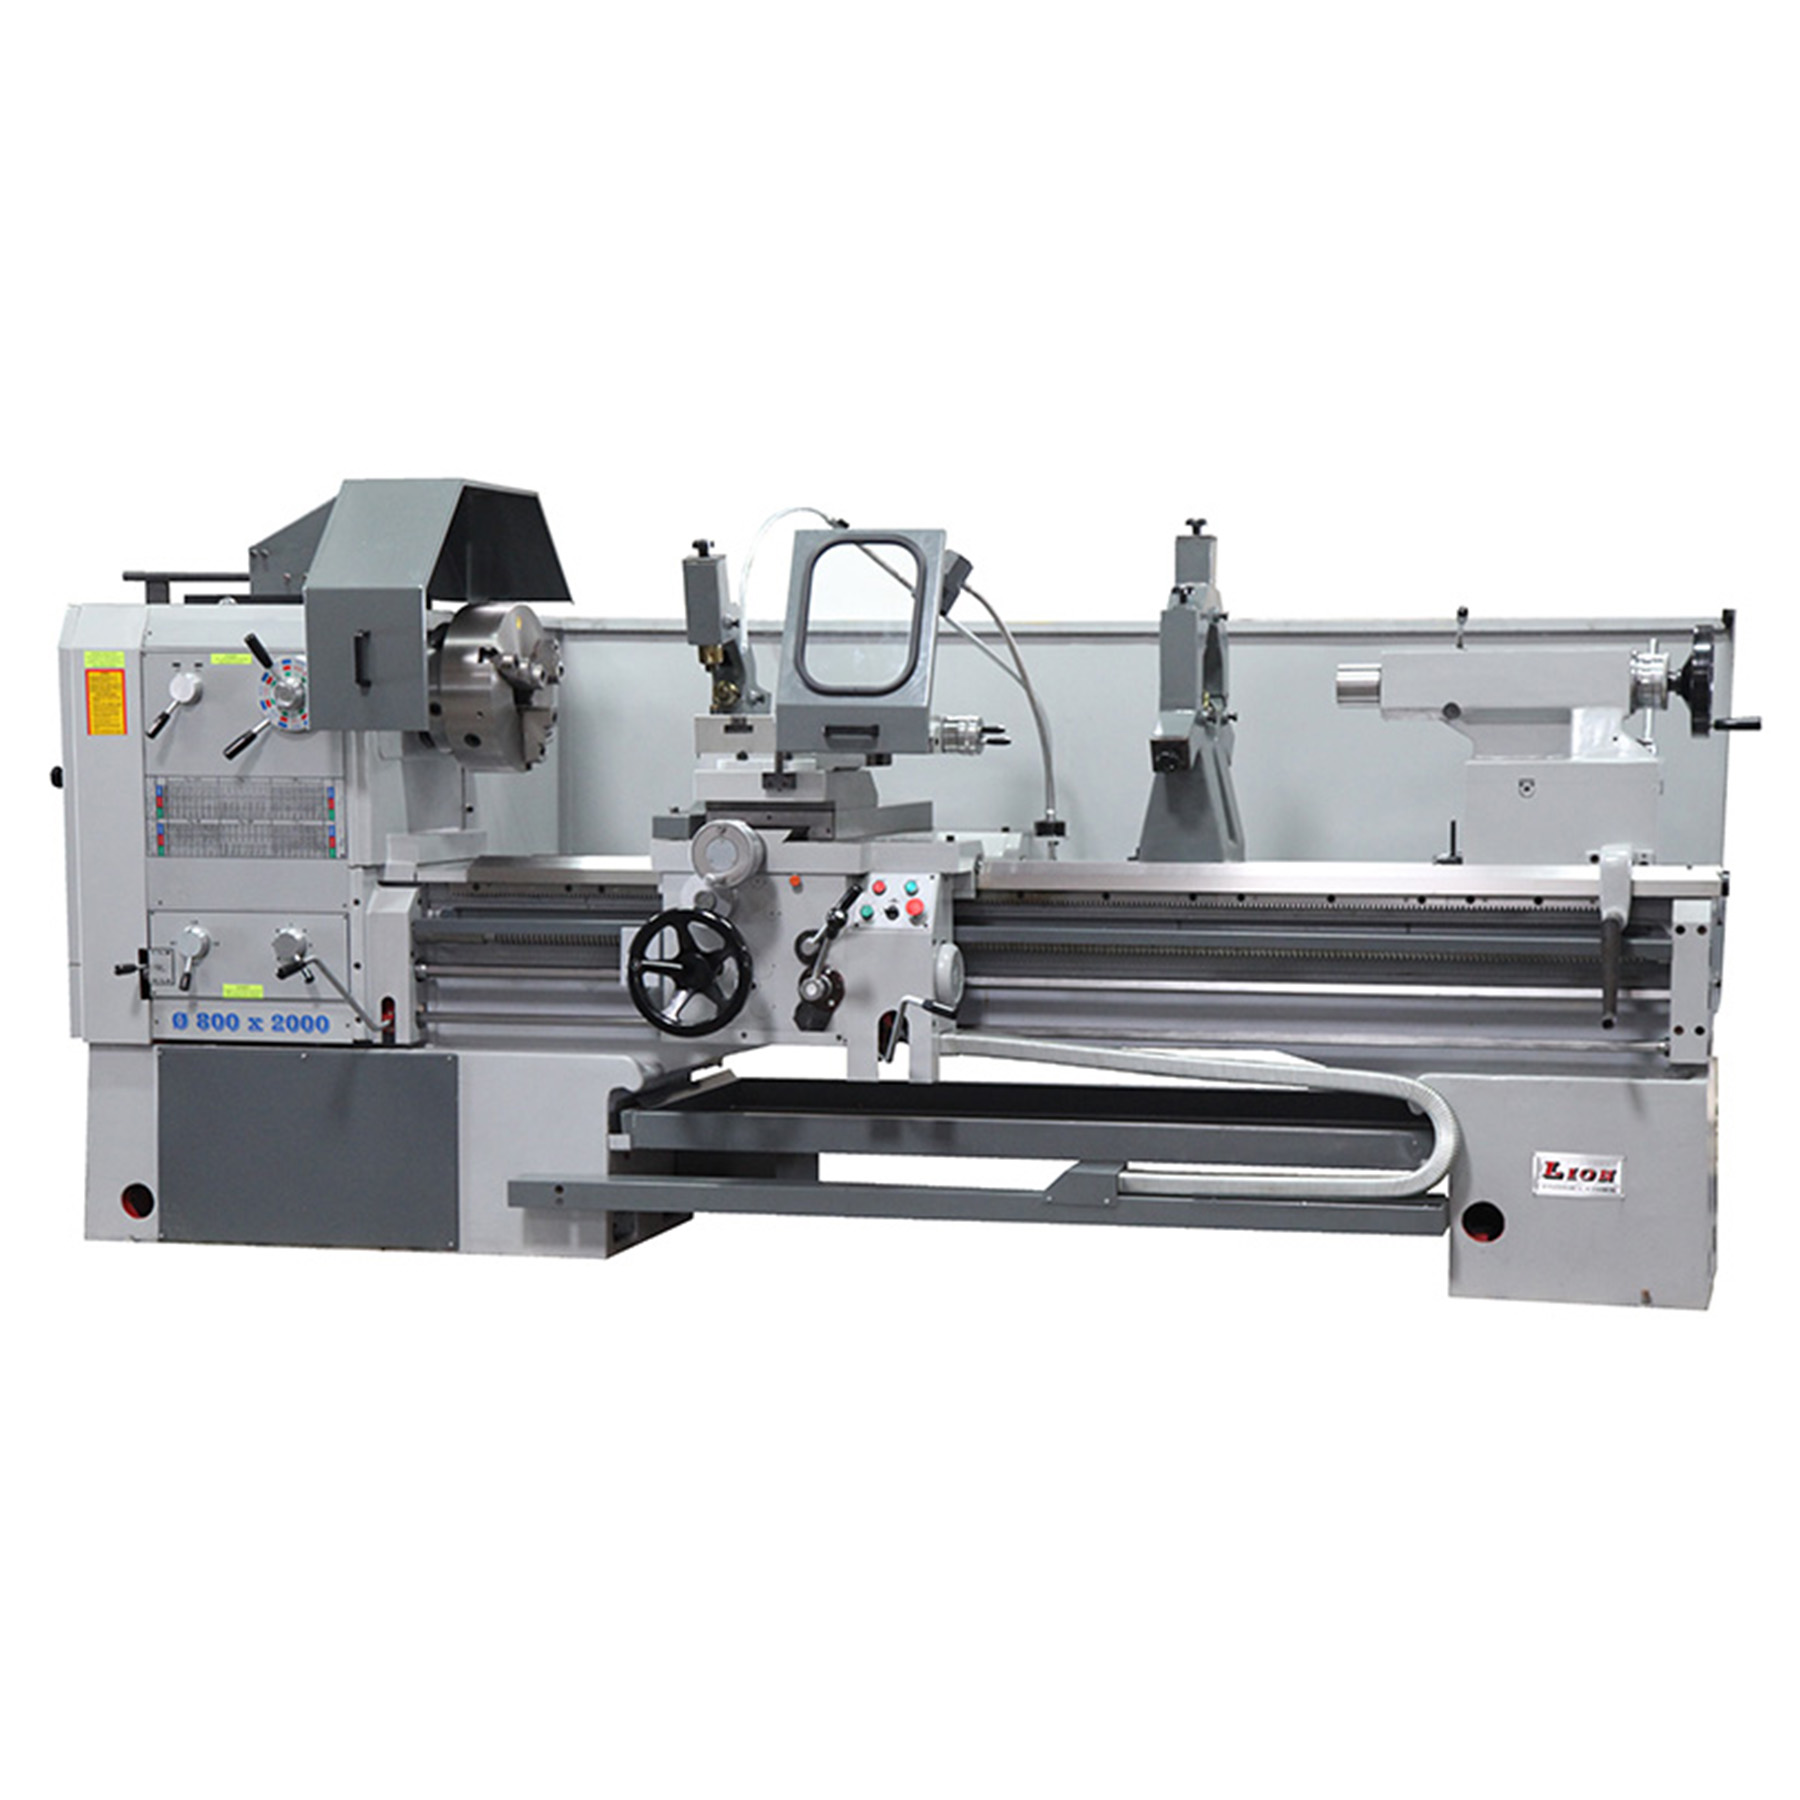 "30"" x 120"" New Lion Lathe MODEL 30-CU ENGINE LATHE 4"" Spindle Bore for sale Worldwide Machine Tool in Columbus Ohio call 614-255-9000"